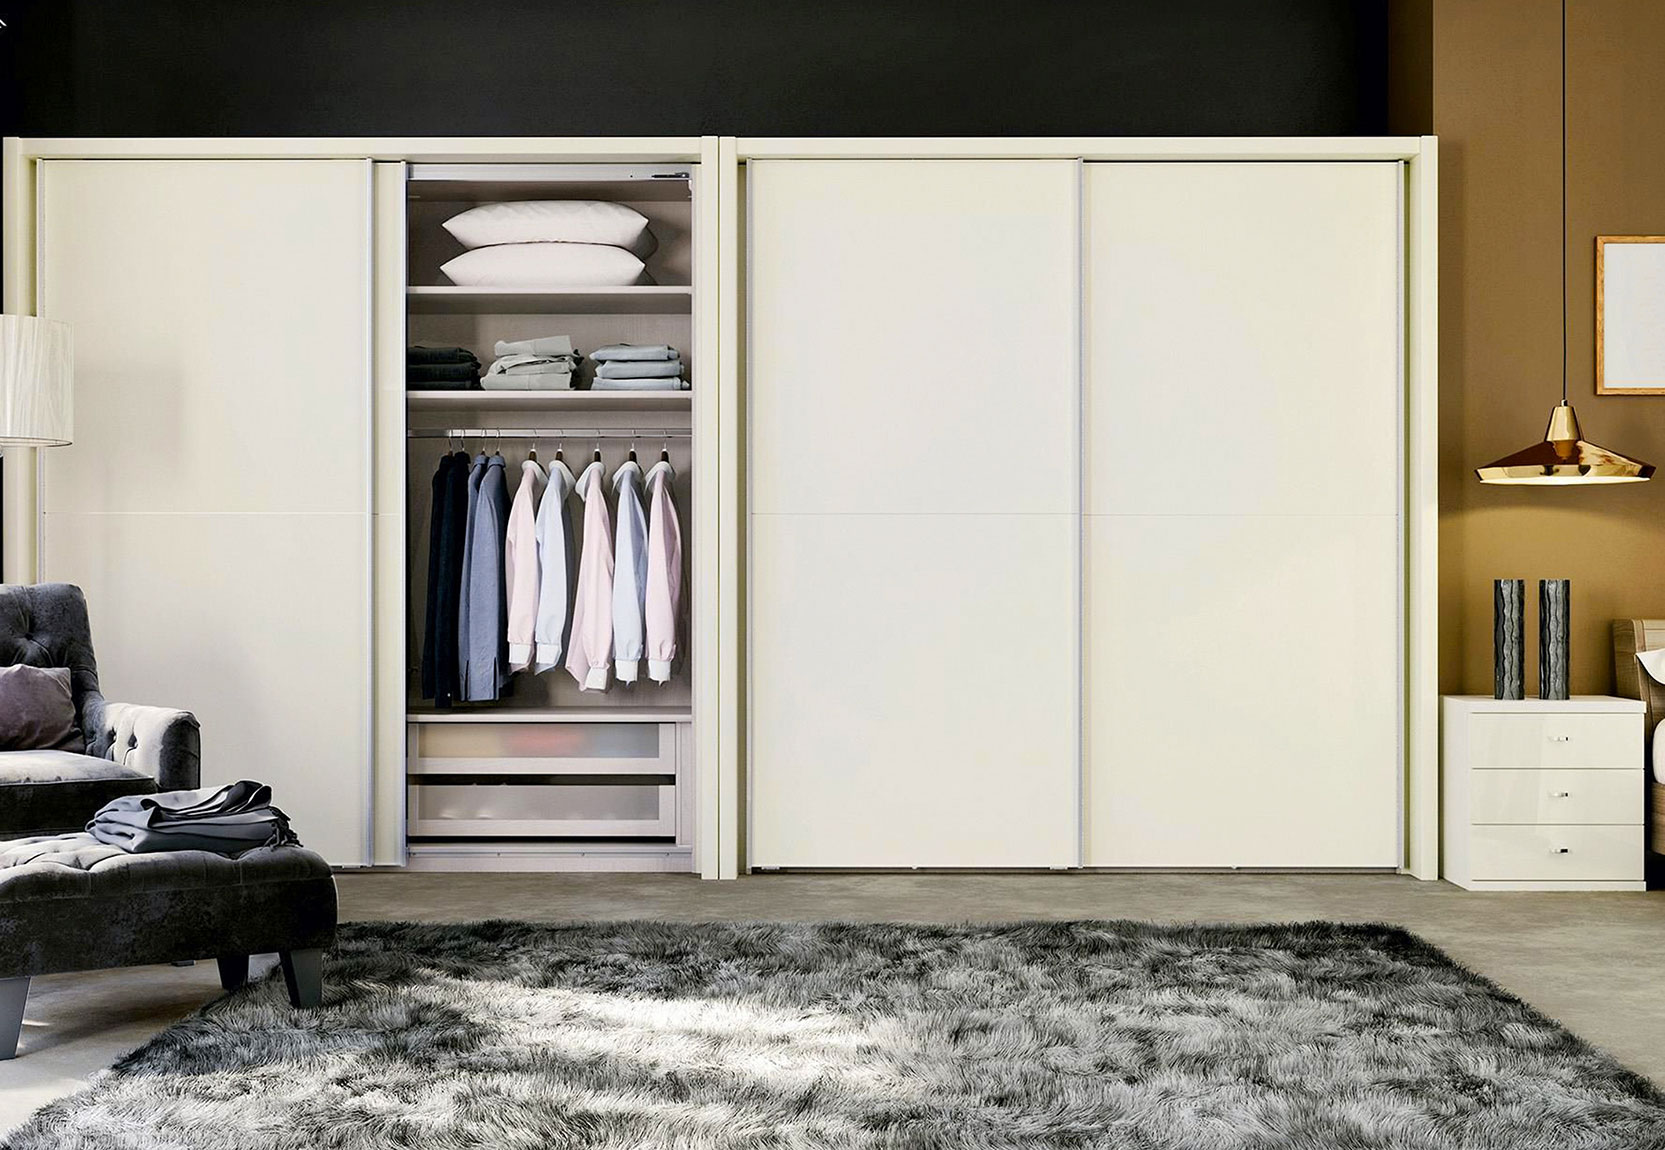 mesmerizing bedroom wardrobe designs | Laminate Wardrobe Design - The Best Choice for Longer Term